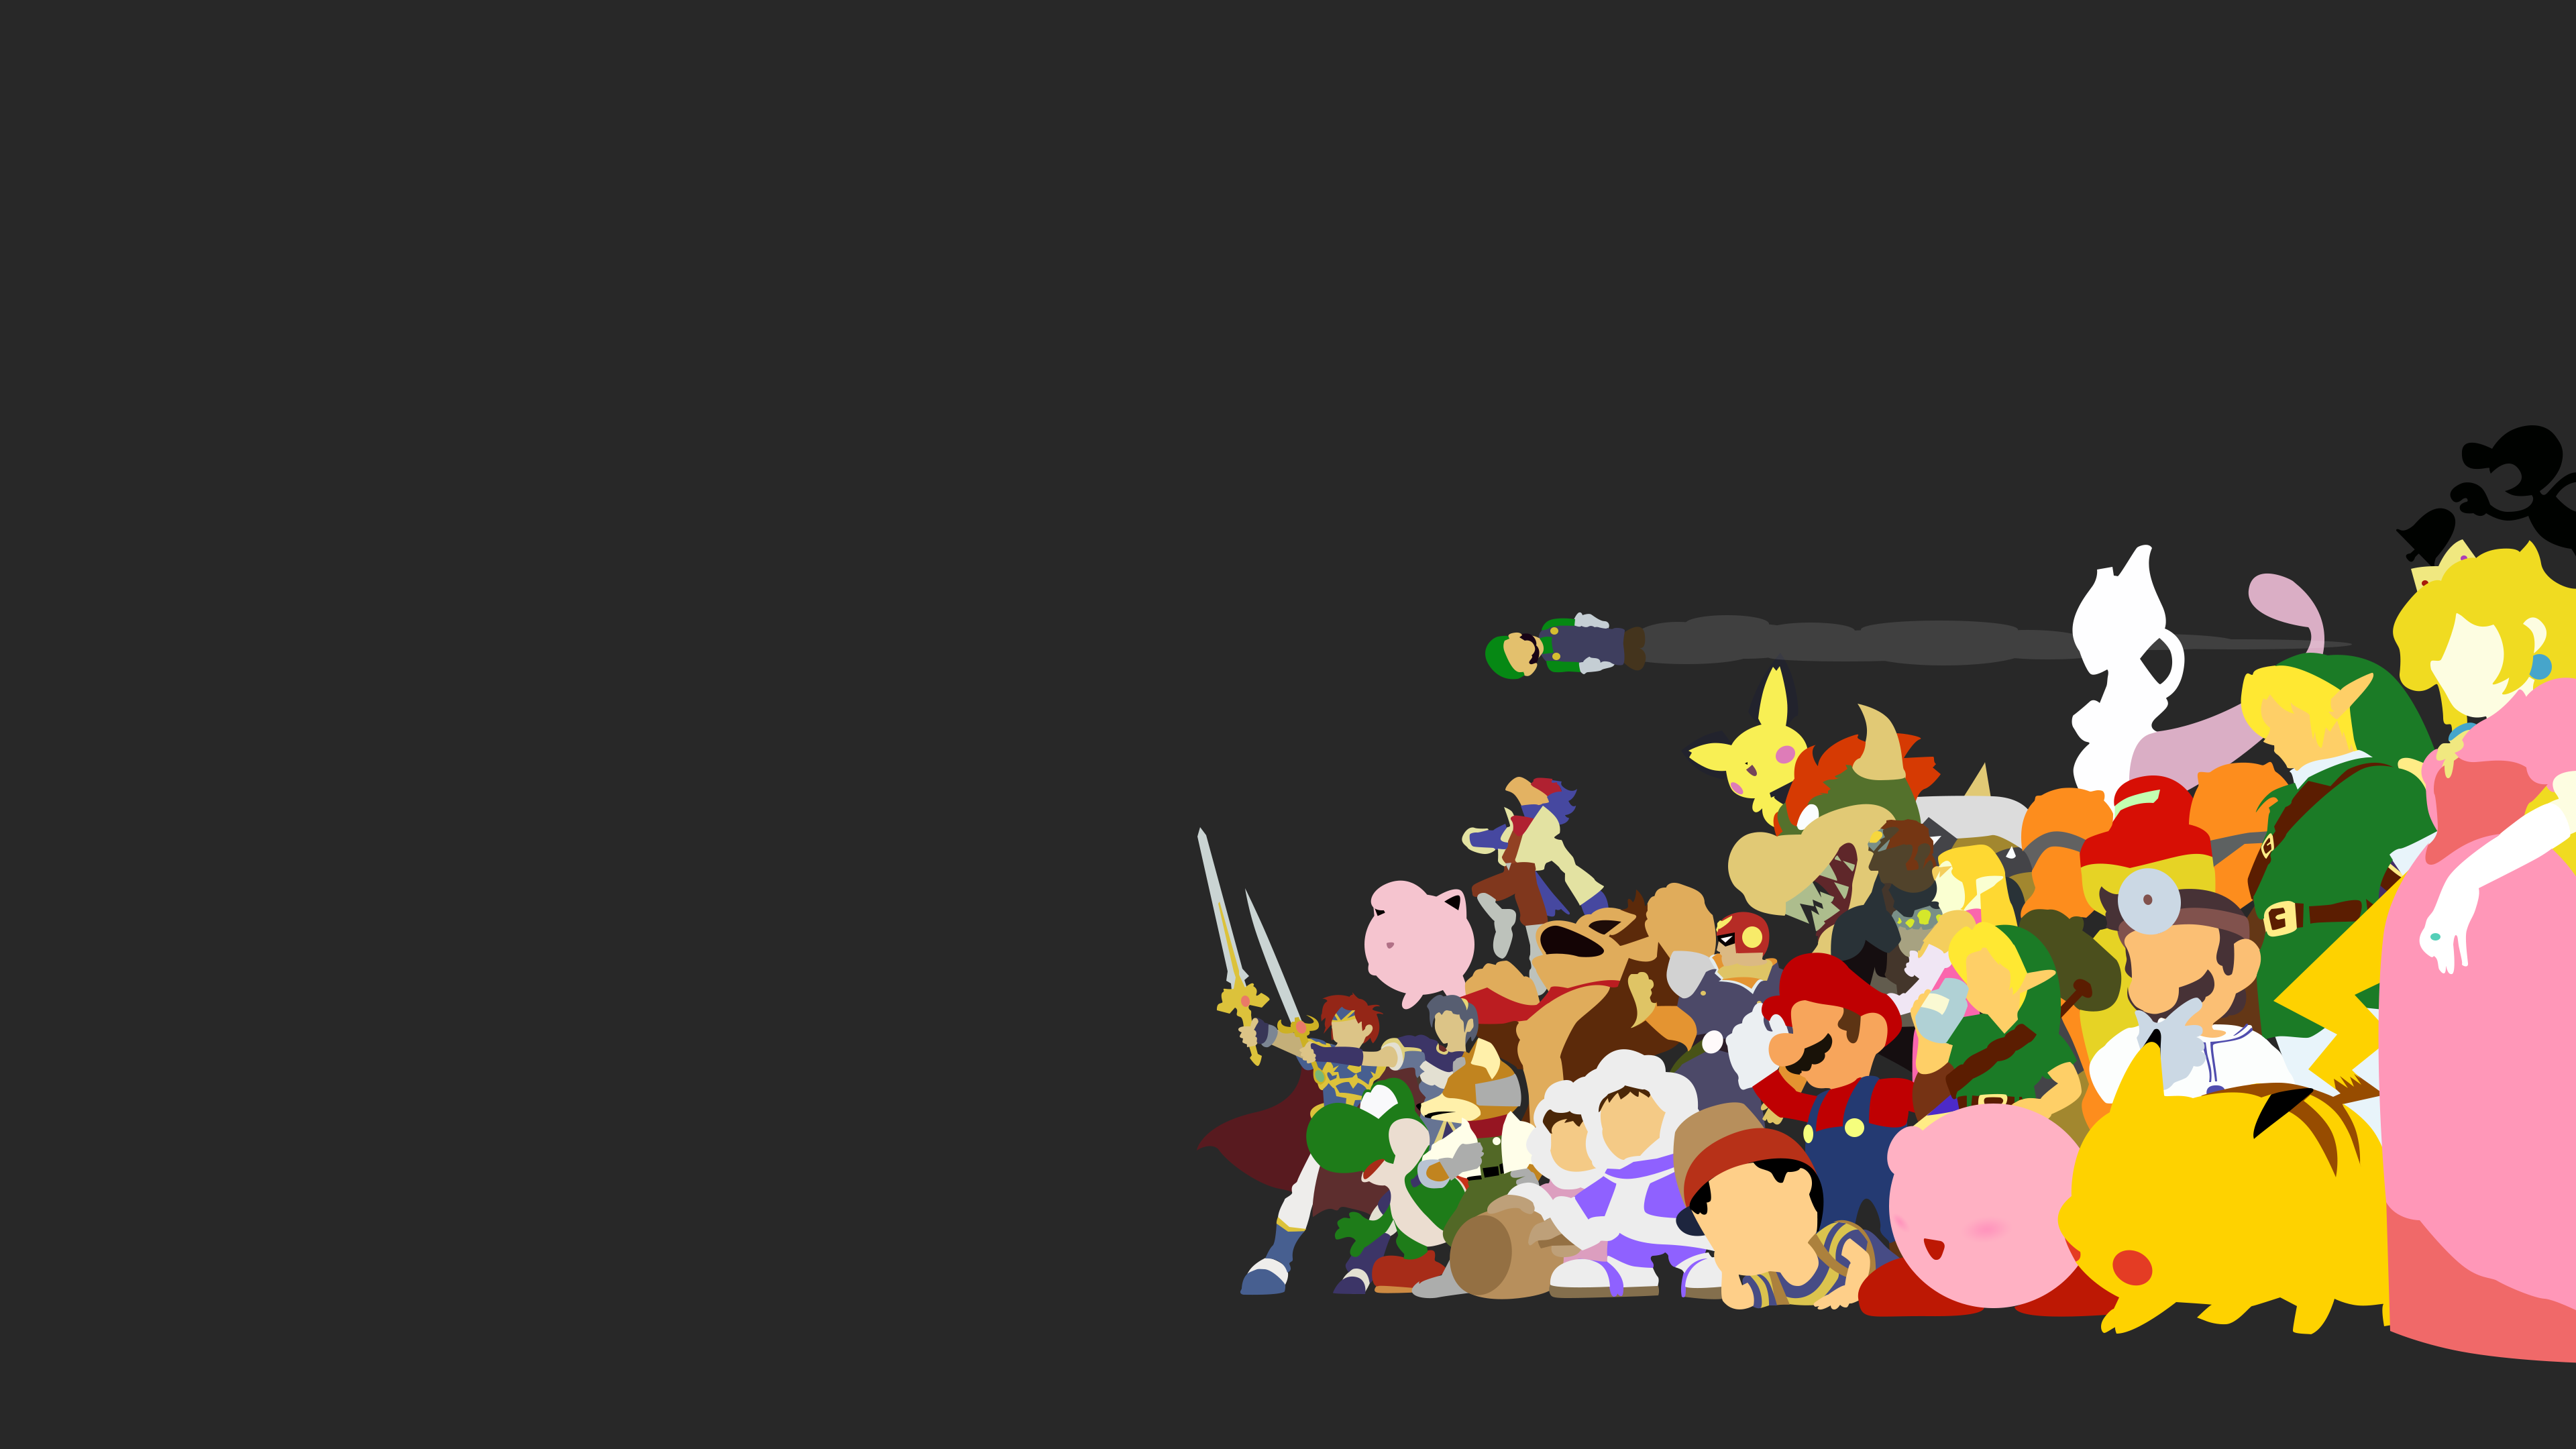 Smash Bros Wallpaper